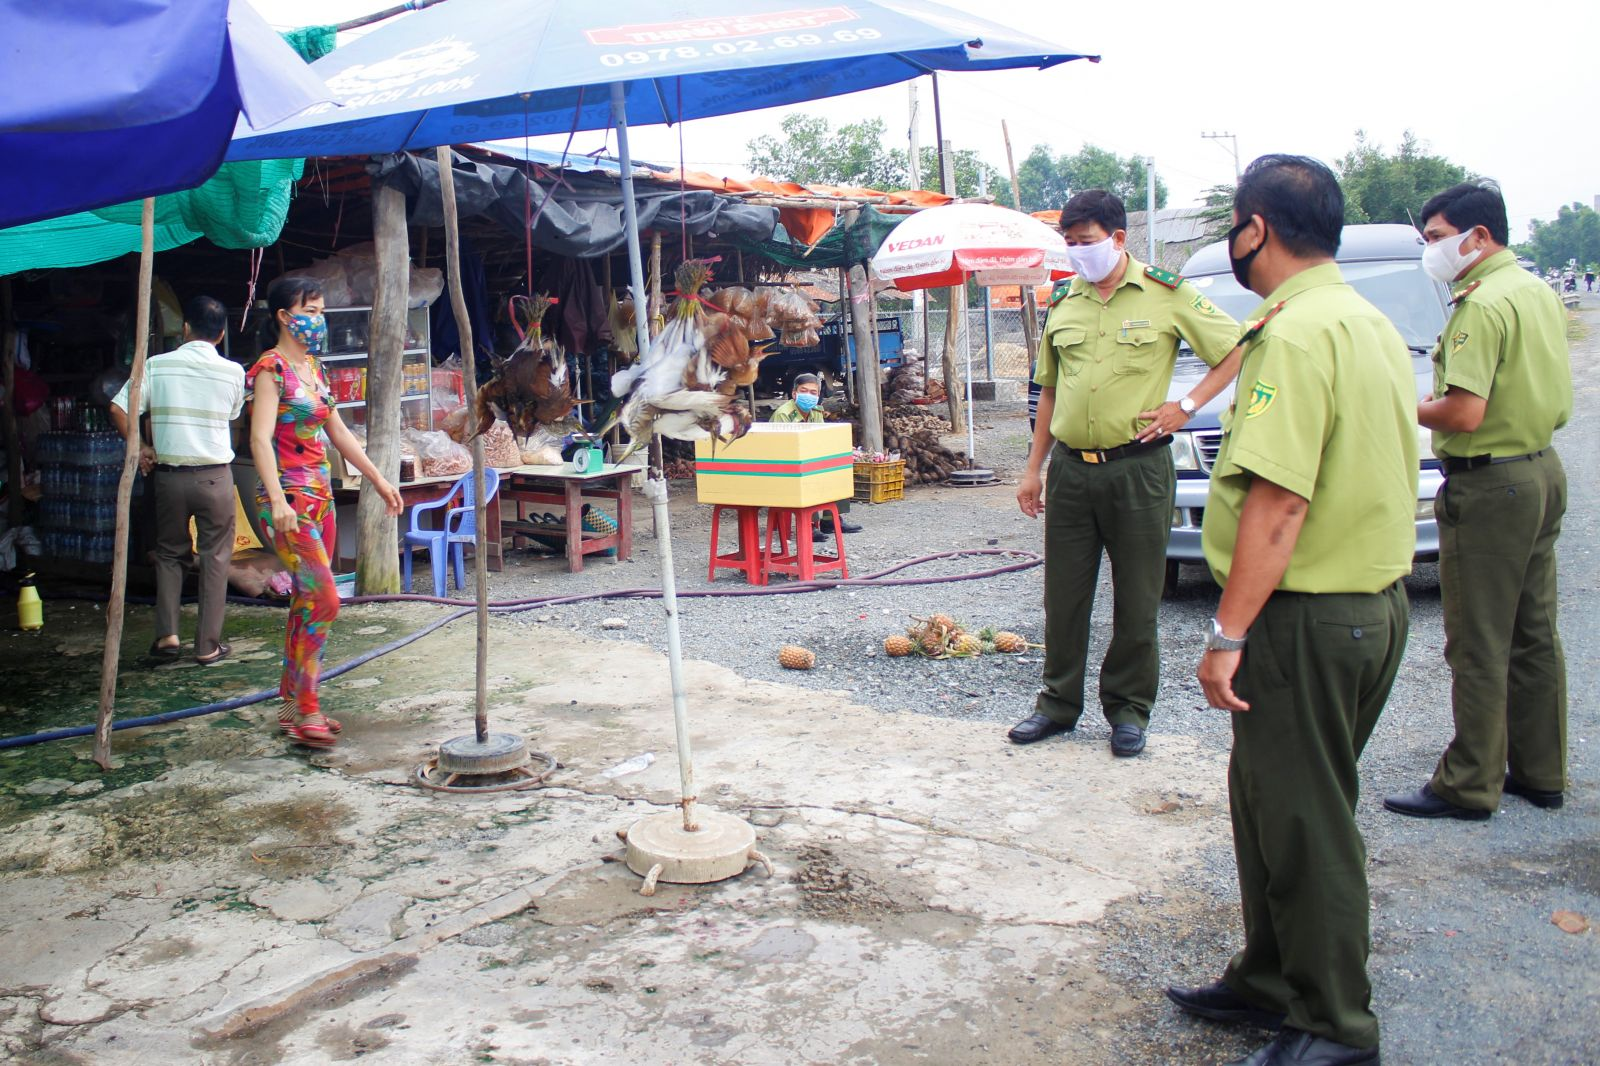 The inspection team discover and ask the shop owner to release about 20 individuals of the stork in natural environment